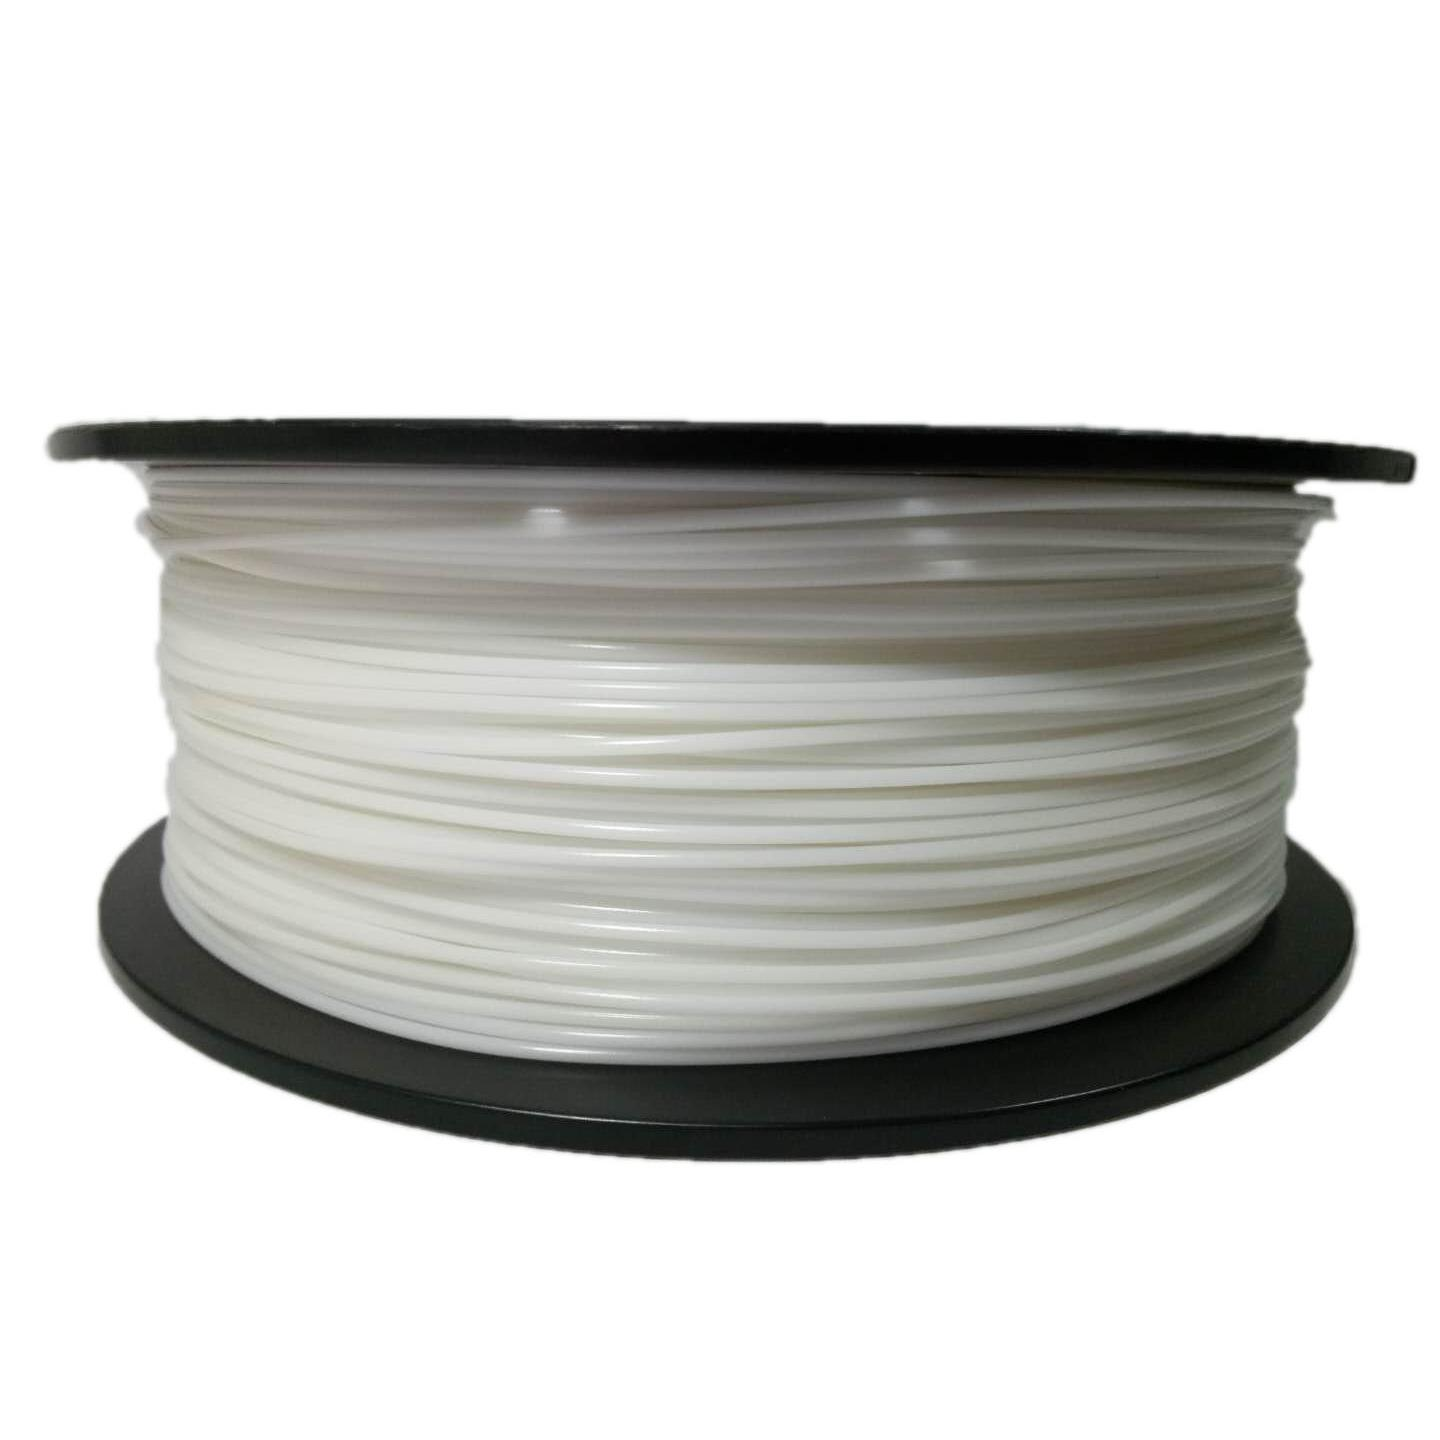 The Cheapest White Petg Filament For 3D Printer 1 75Mm 1Kg Online